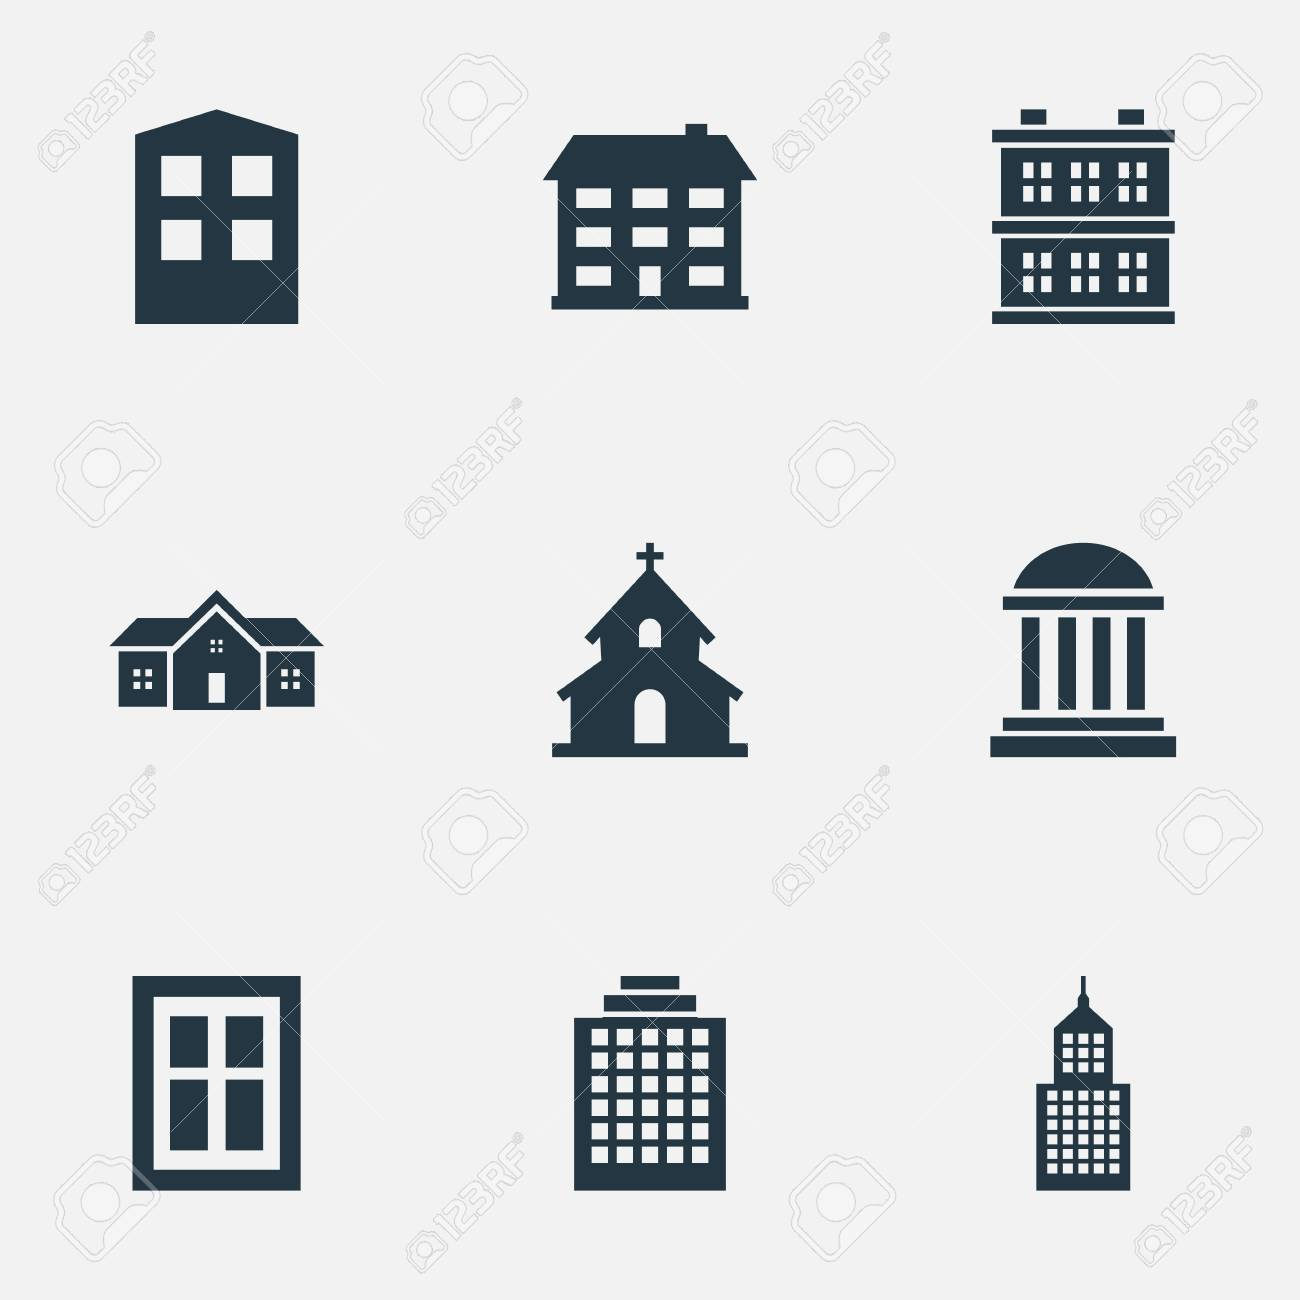 Vector Illustration Set Of Simple Architecture Icons Elements